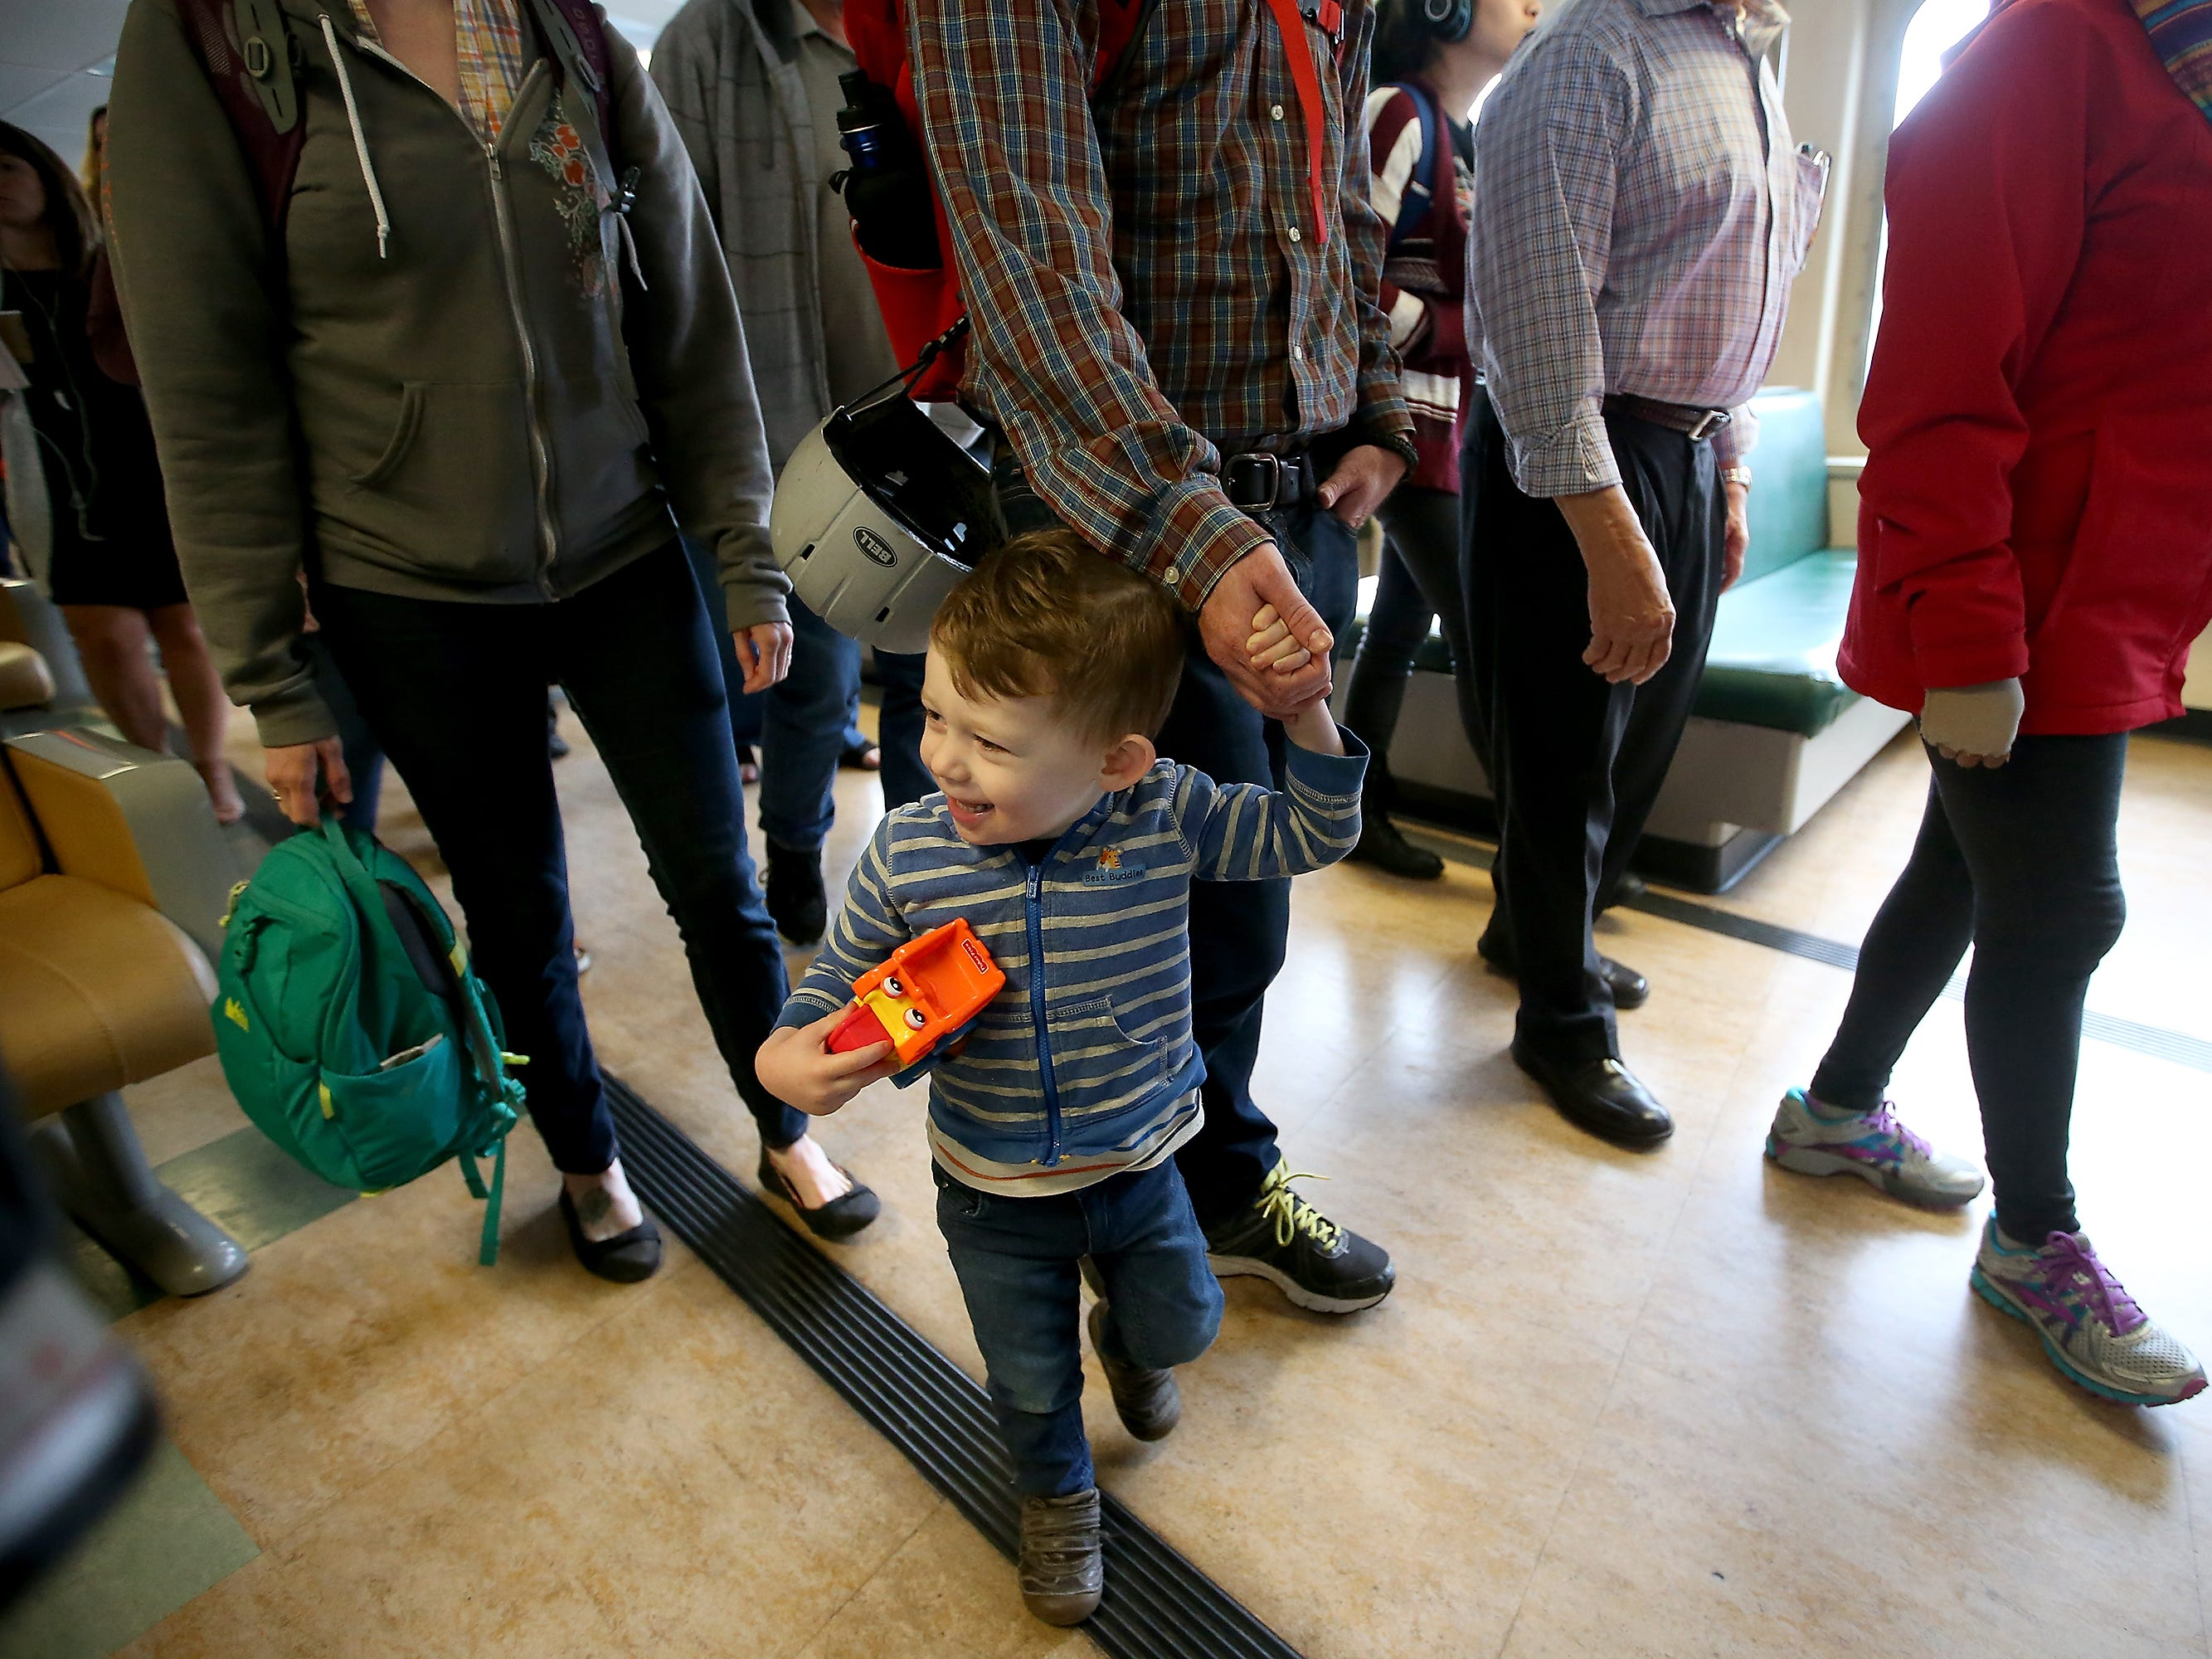 Kellas MacPherson, 2, holds his father Gavin's hand as they make their way off the crowded Washington State Ferry Walla Walla at Coleman Dock in Seattle on Thursday, July 19, 2018.